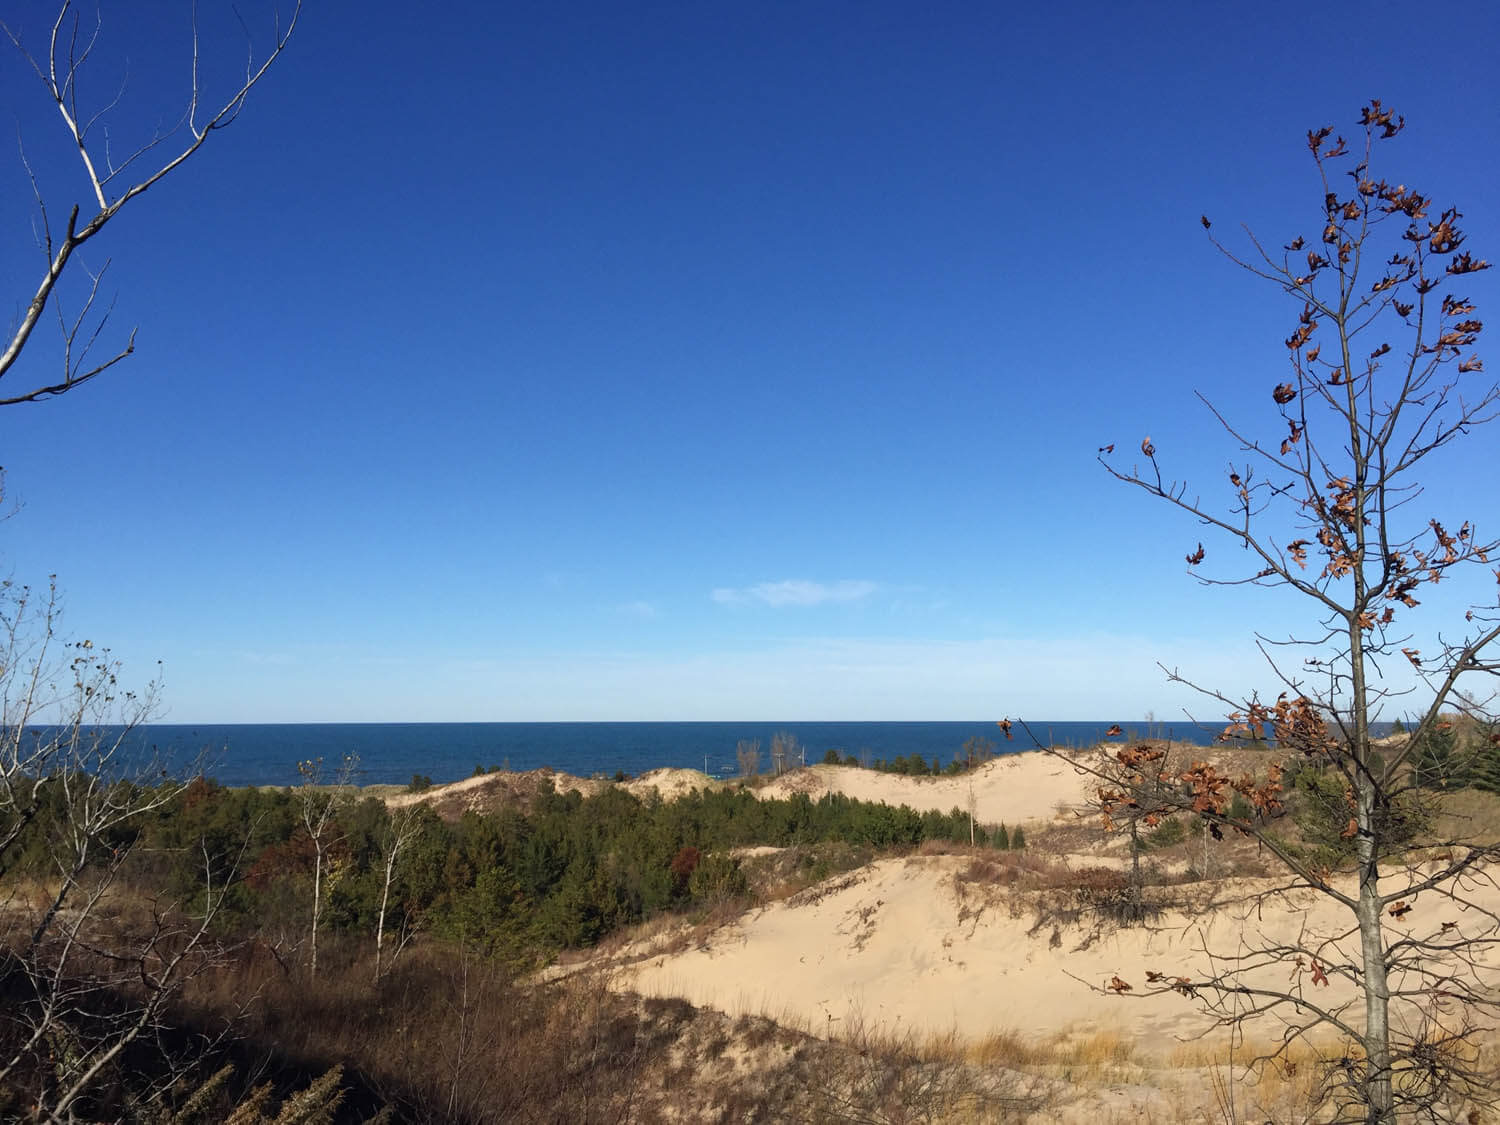 View of the Indiana Dunes with the blue waters of Lake Michigan in the background.